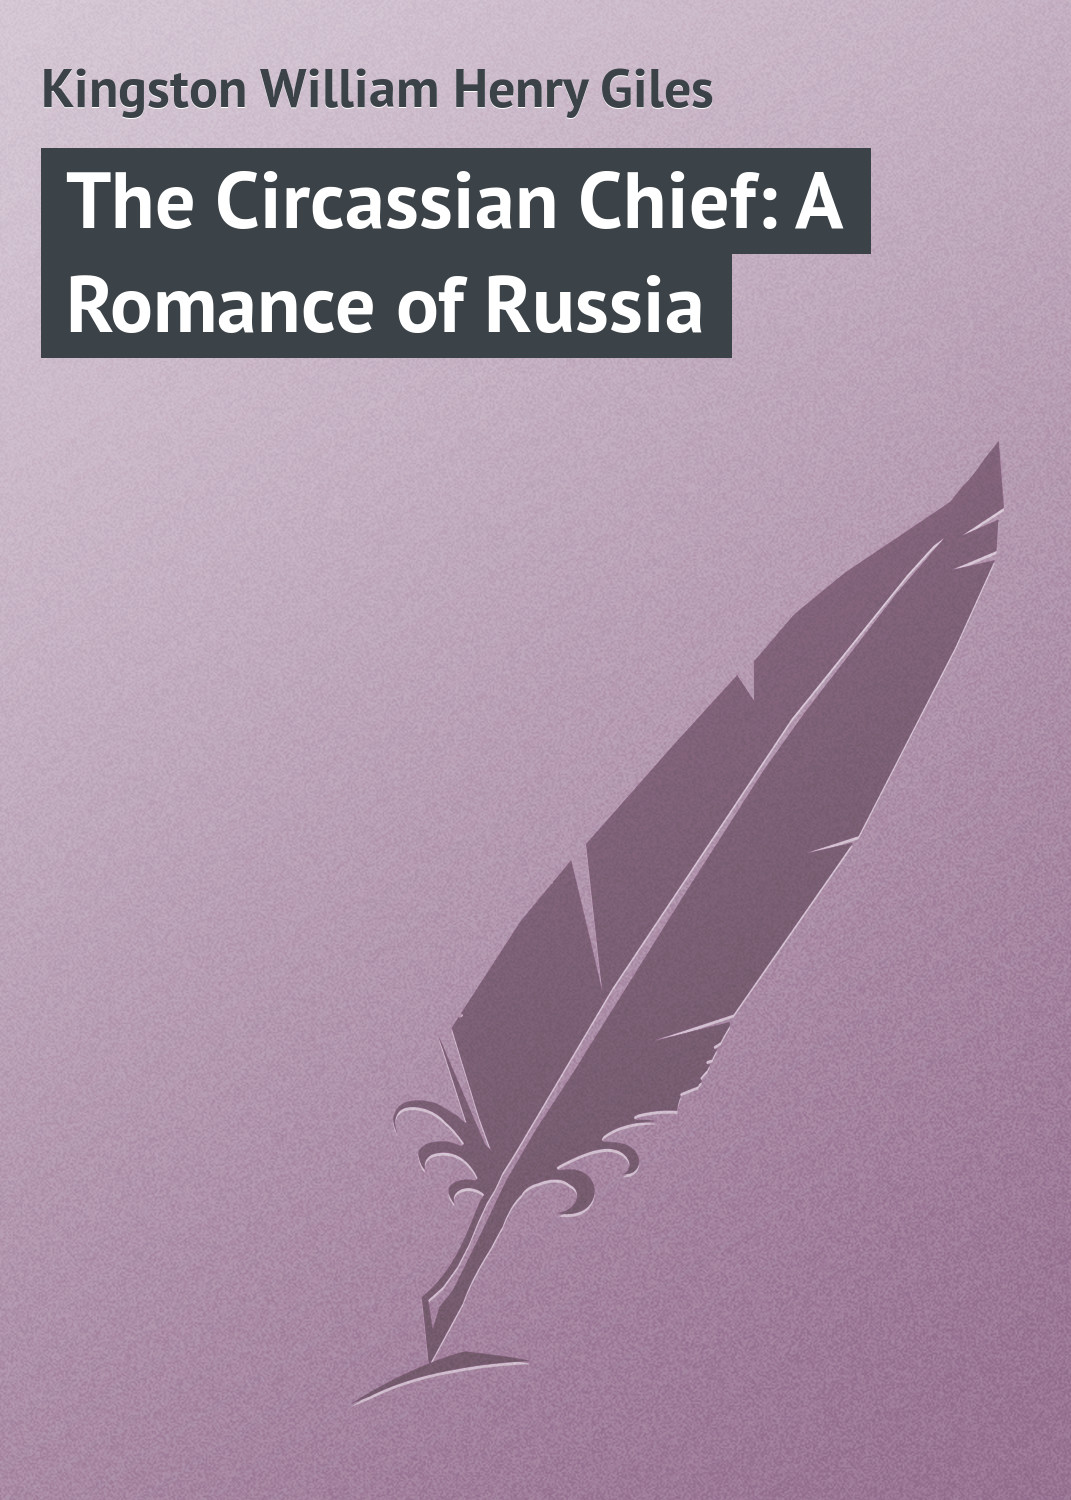 лучшая цена Kingston William Henry Giles The Circassian Chief: A Romance of Russia